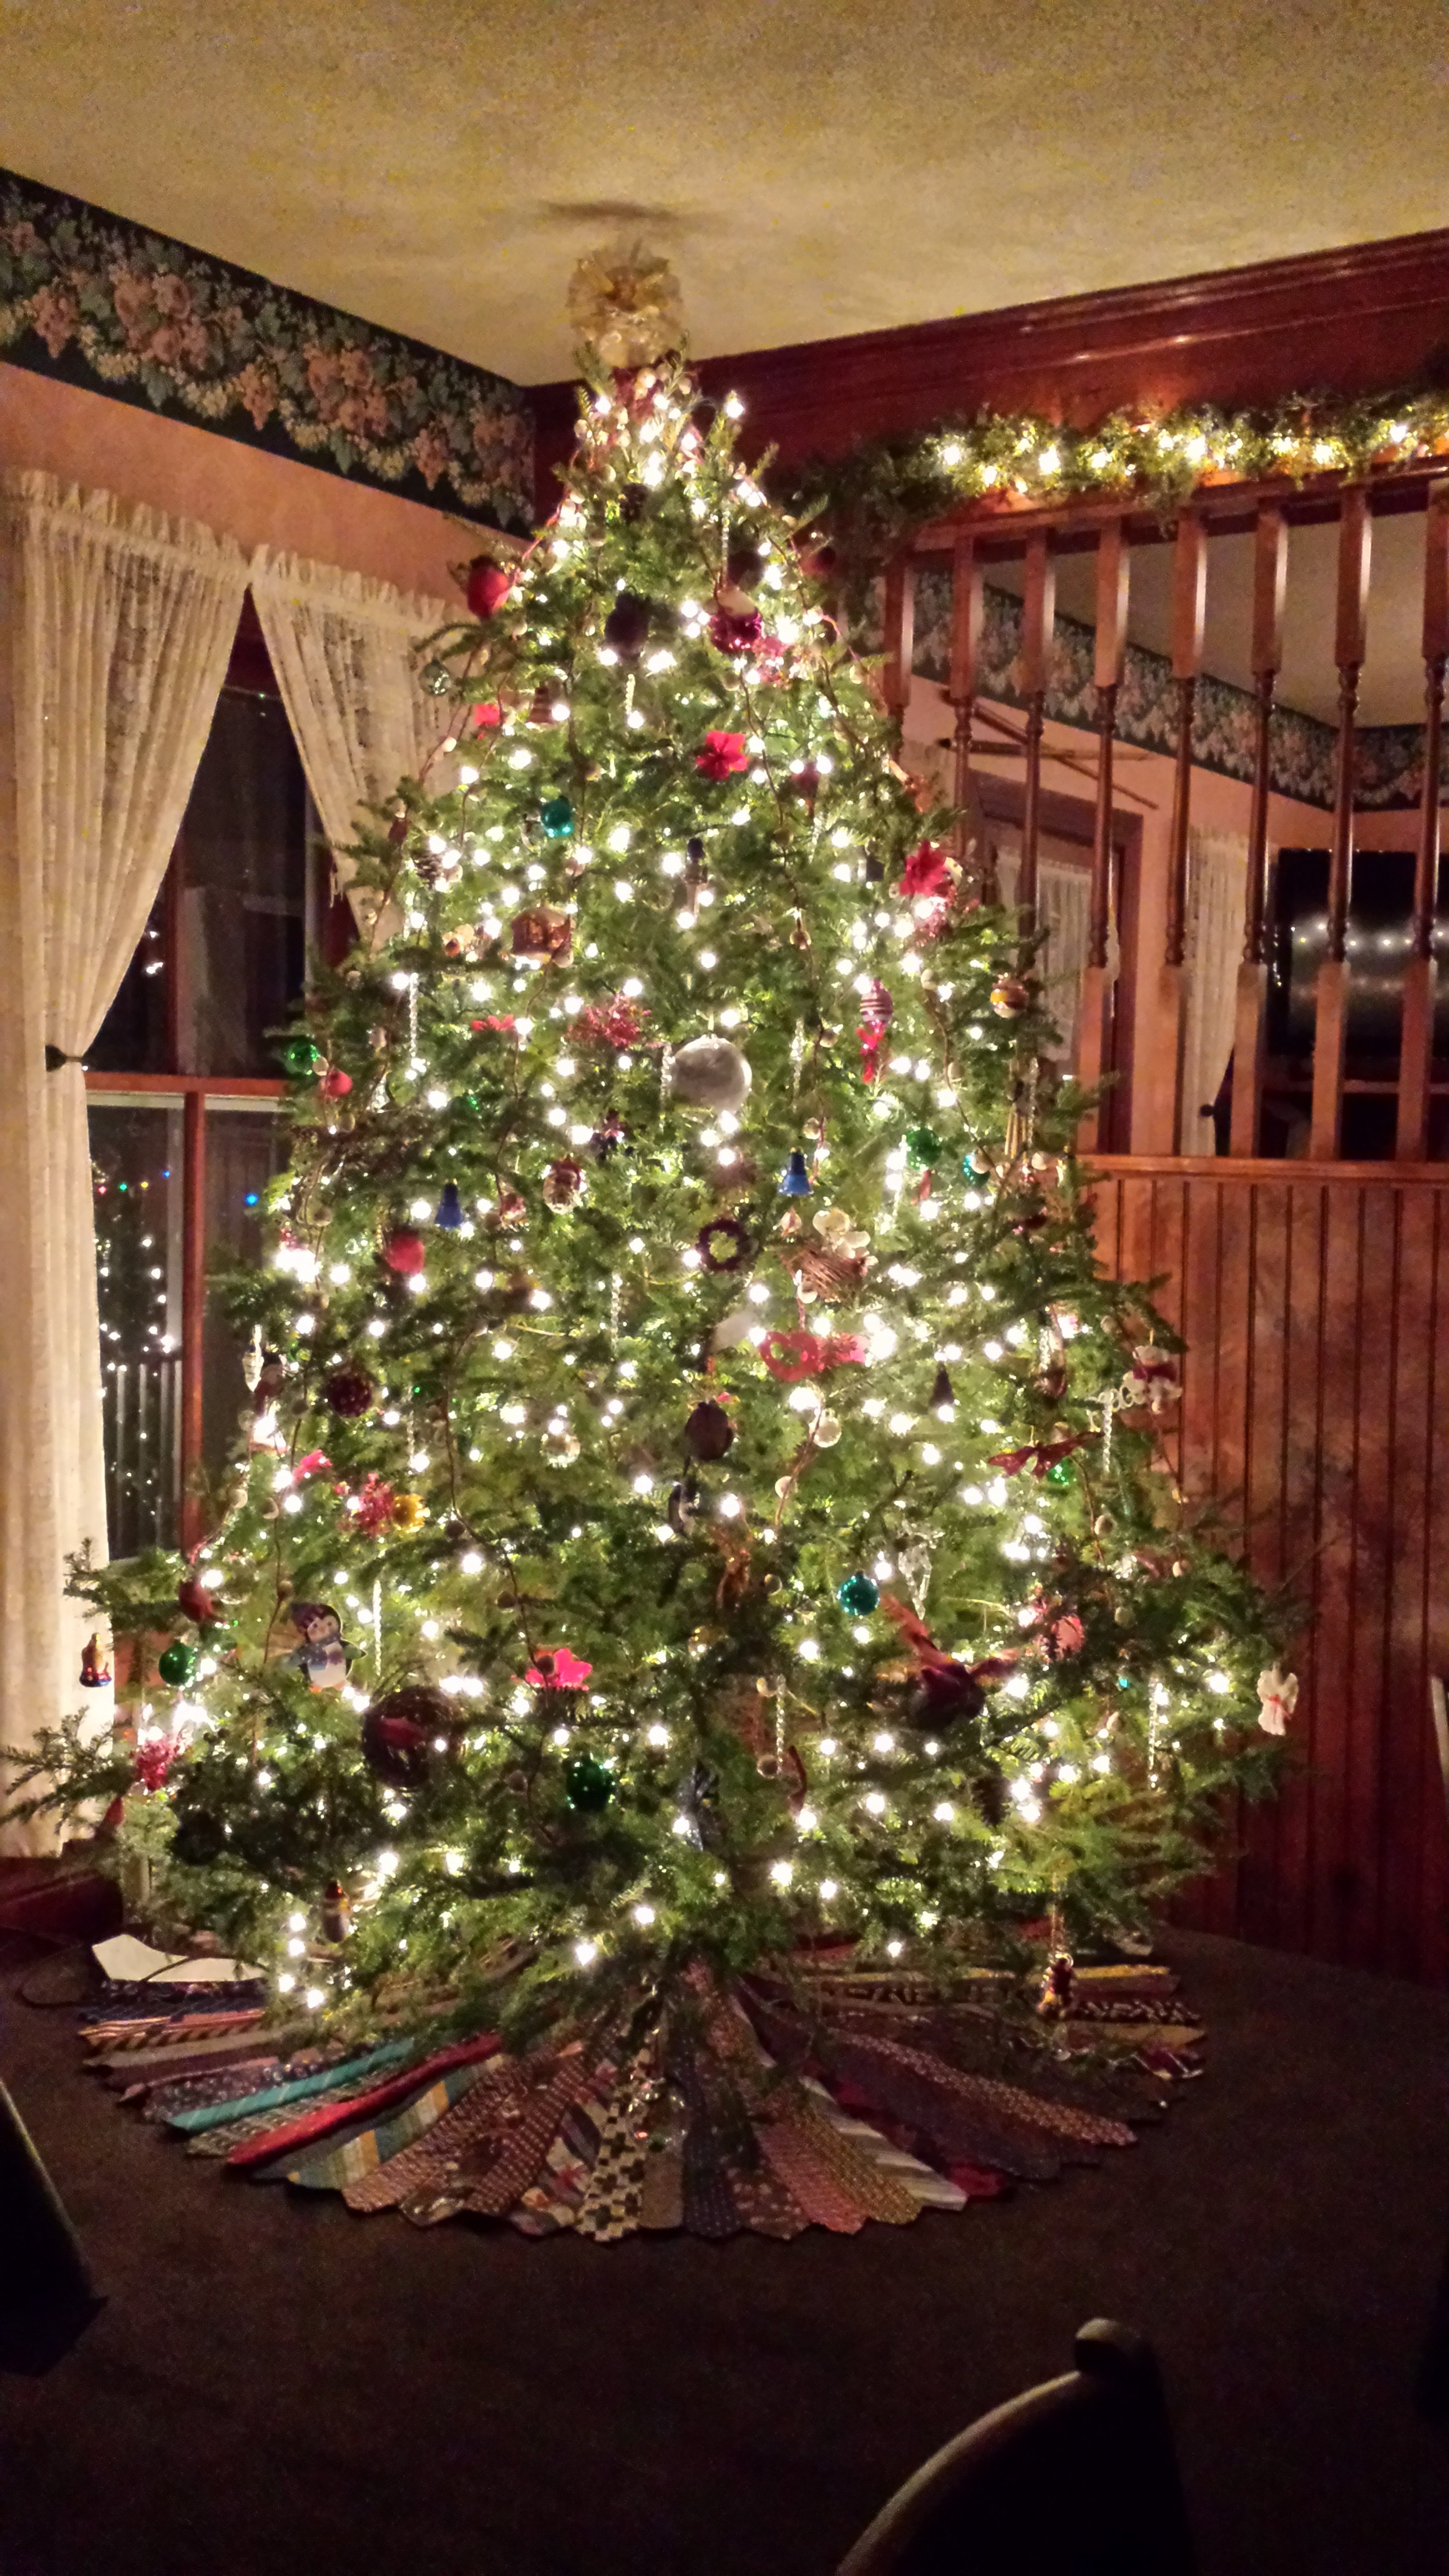 Do You Know What Kind of Weather Your Christmas Tree Has Experienced?